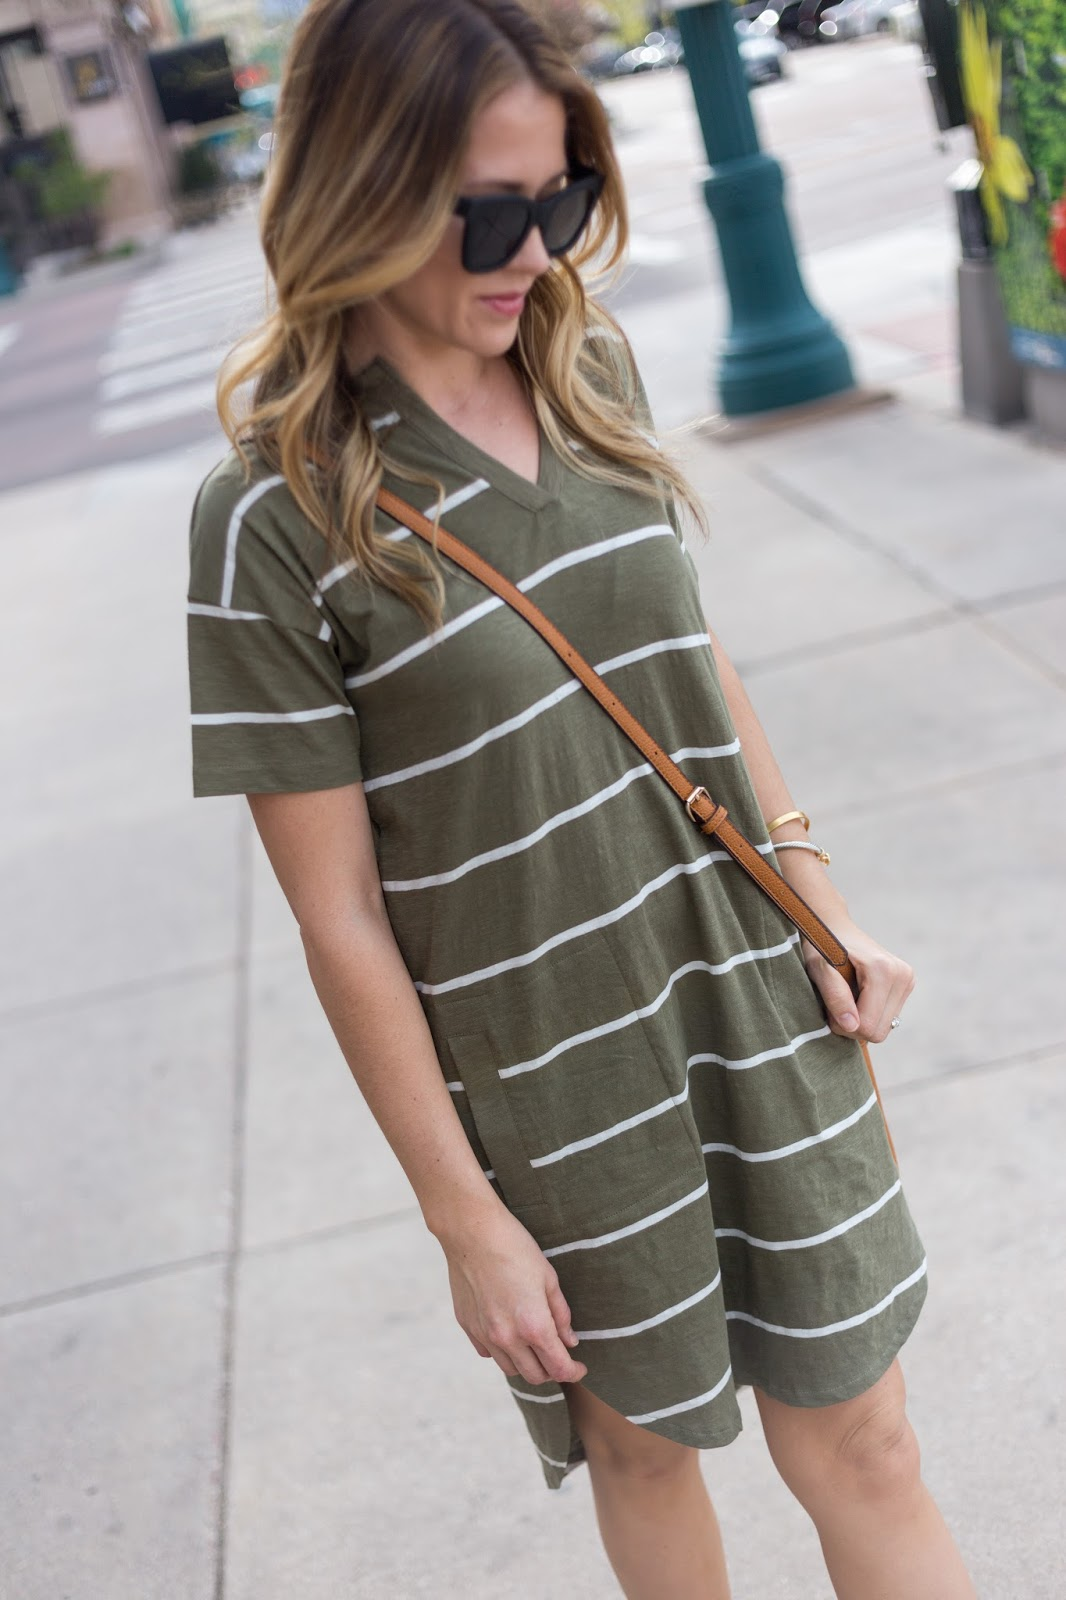 Such a great shirt dress for summer!